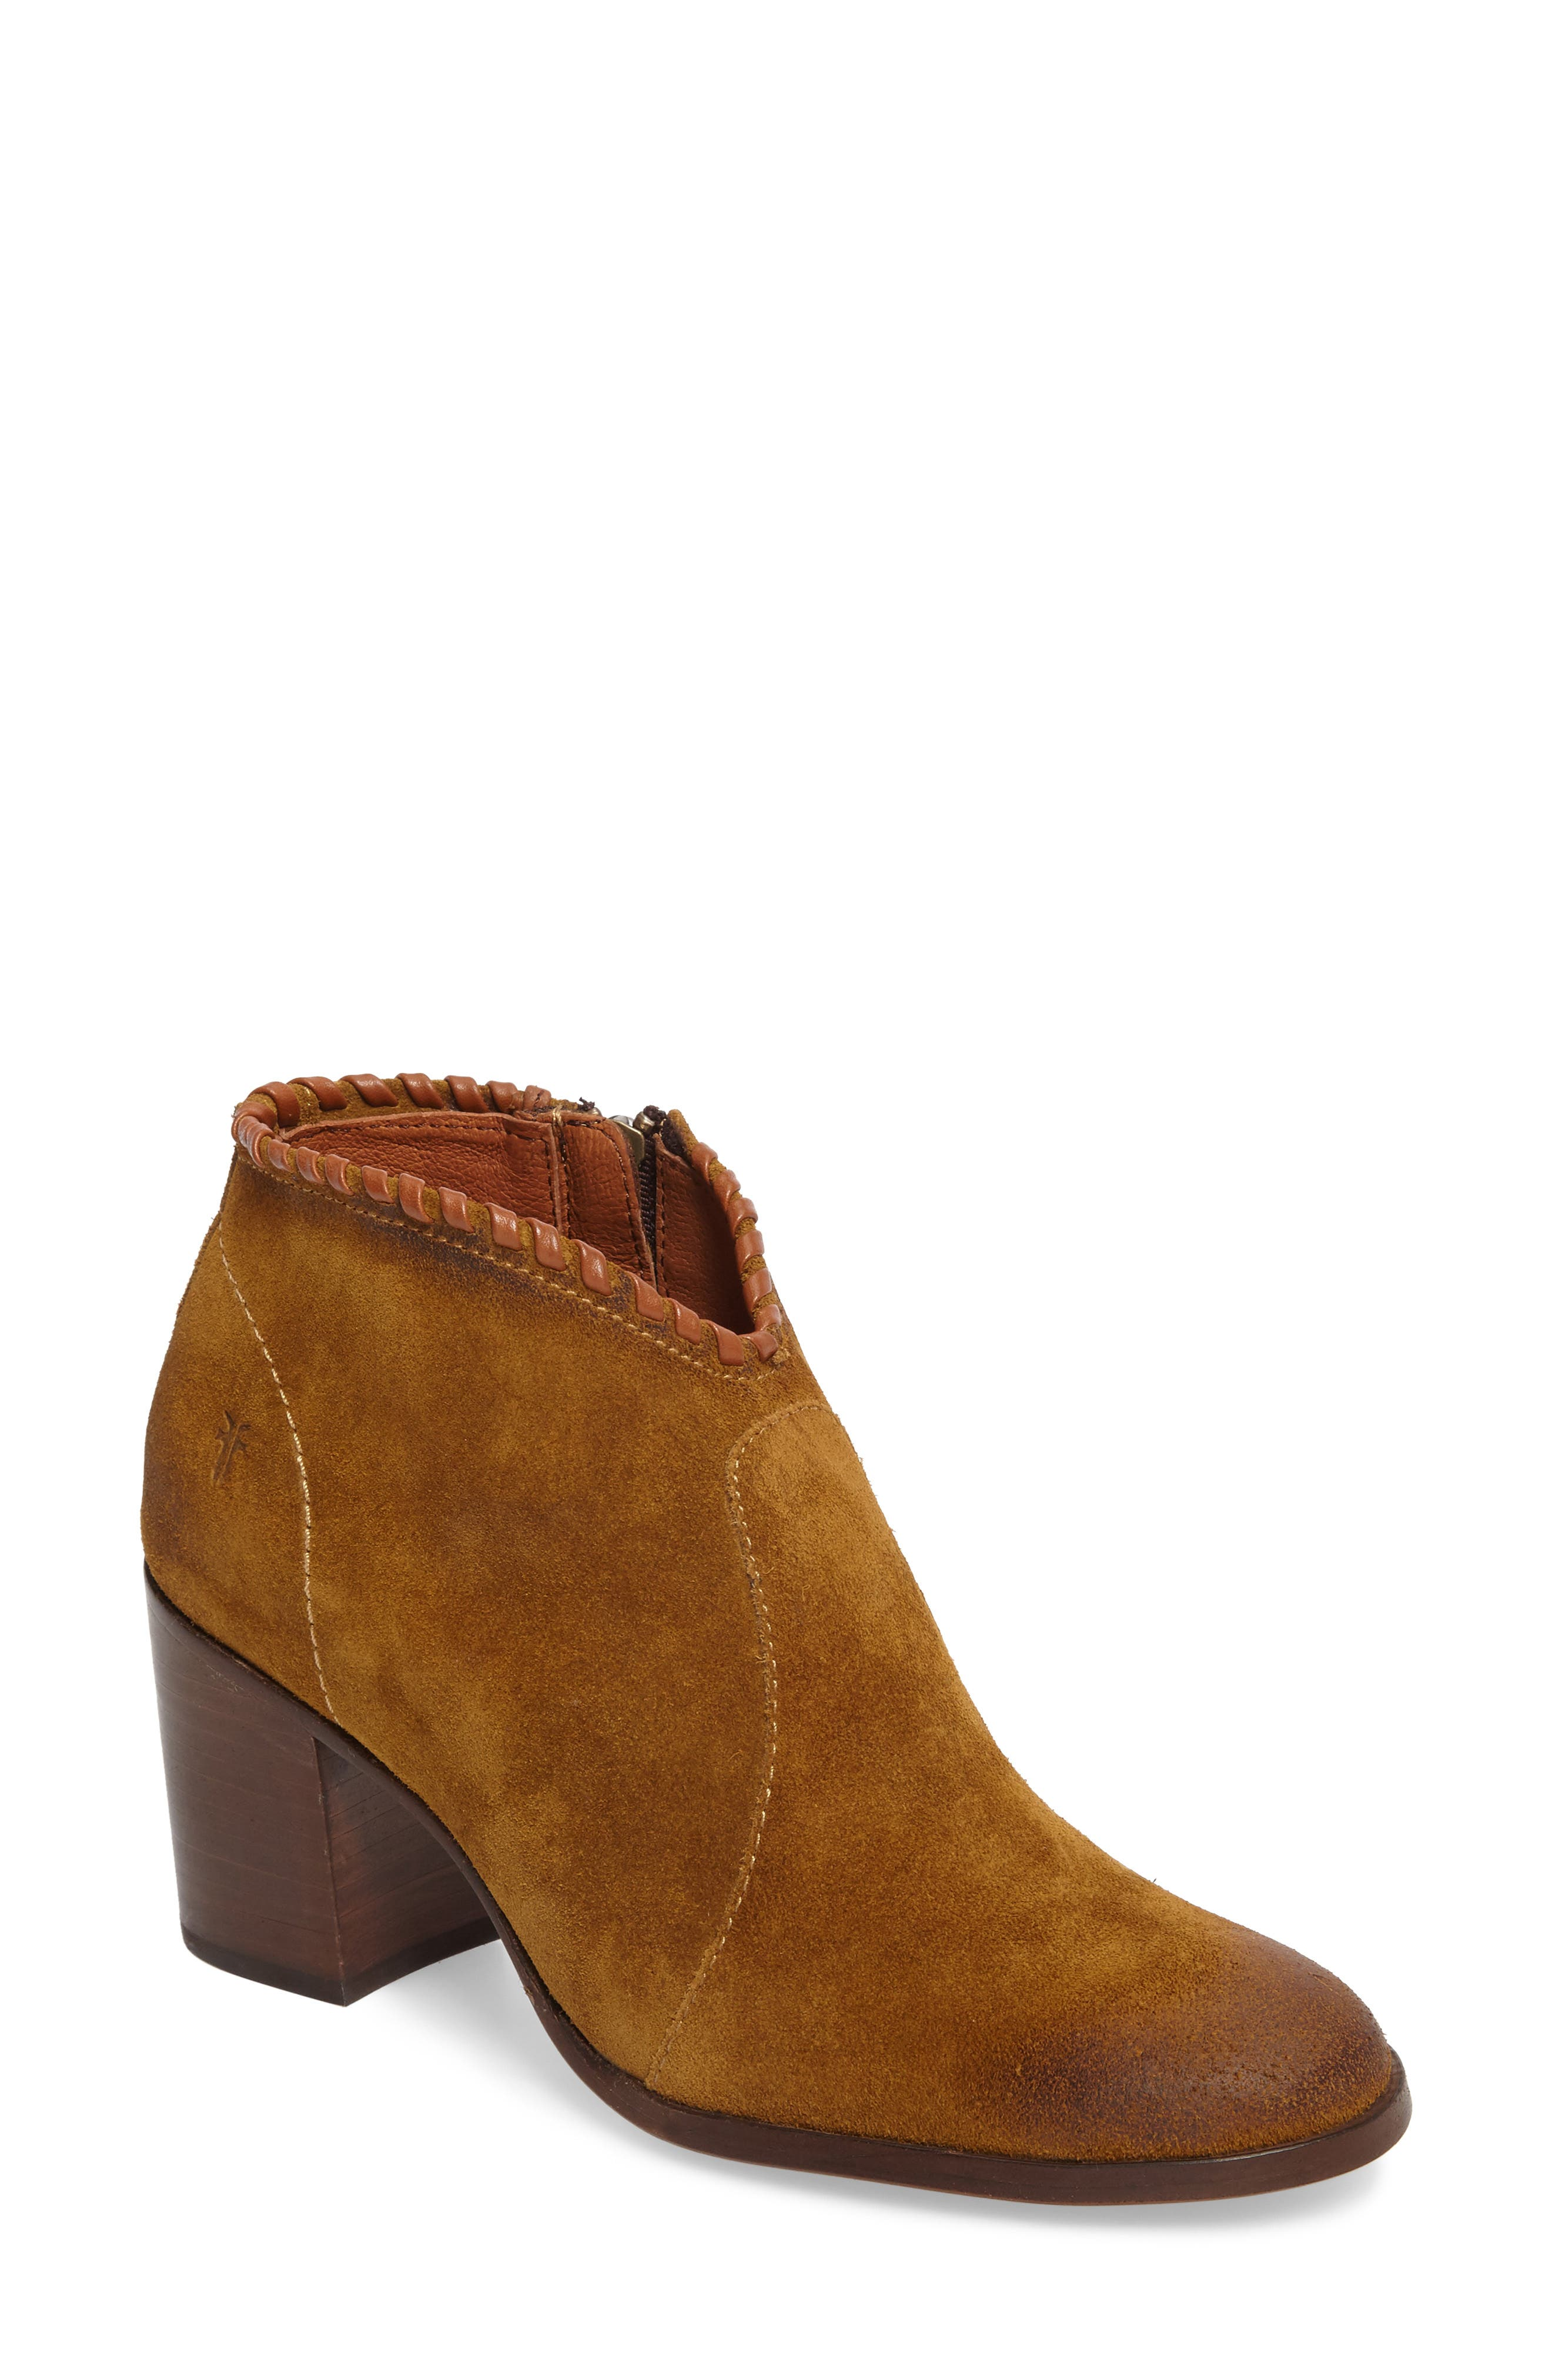 Nora Whipstitch Bootie,                         Main,                         color, Wheat